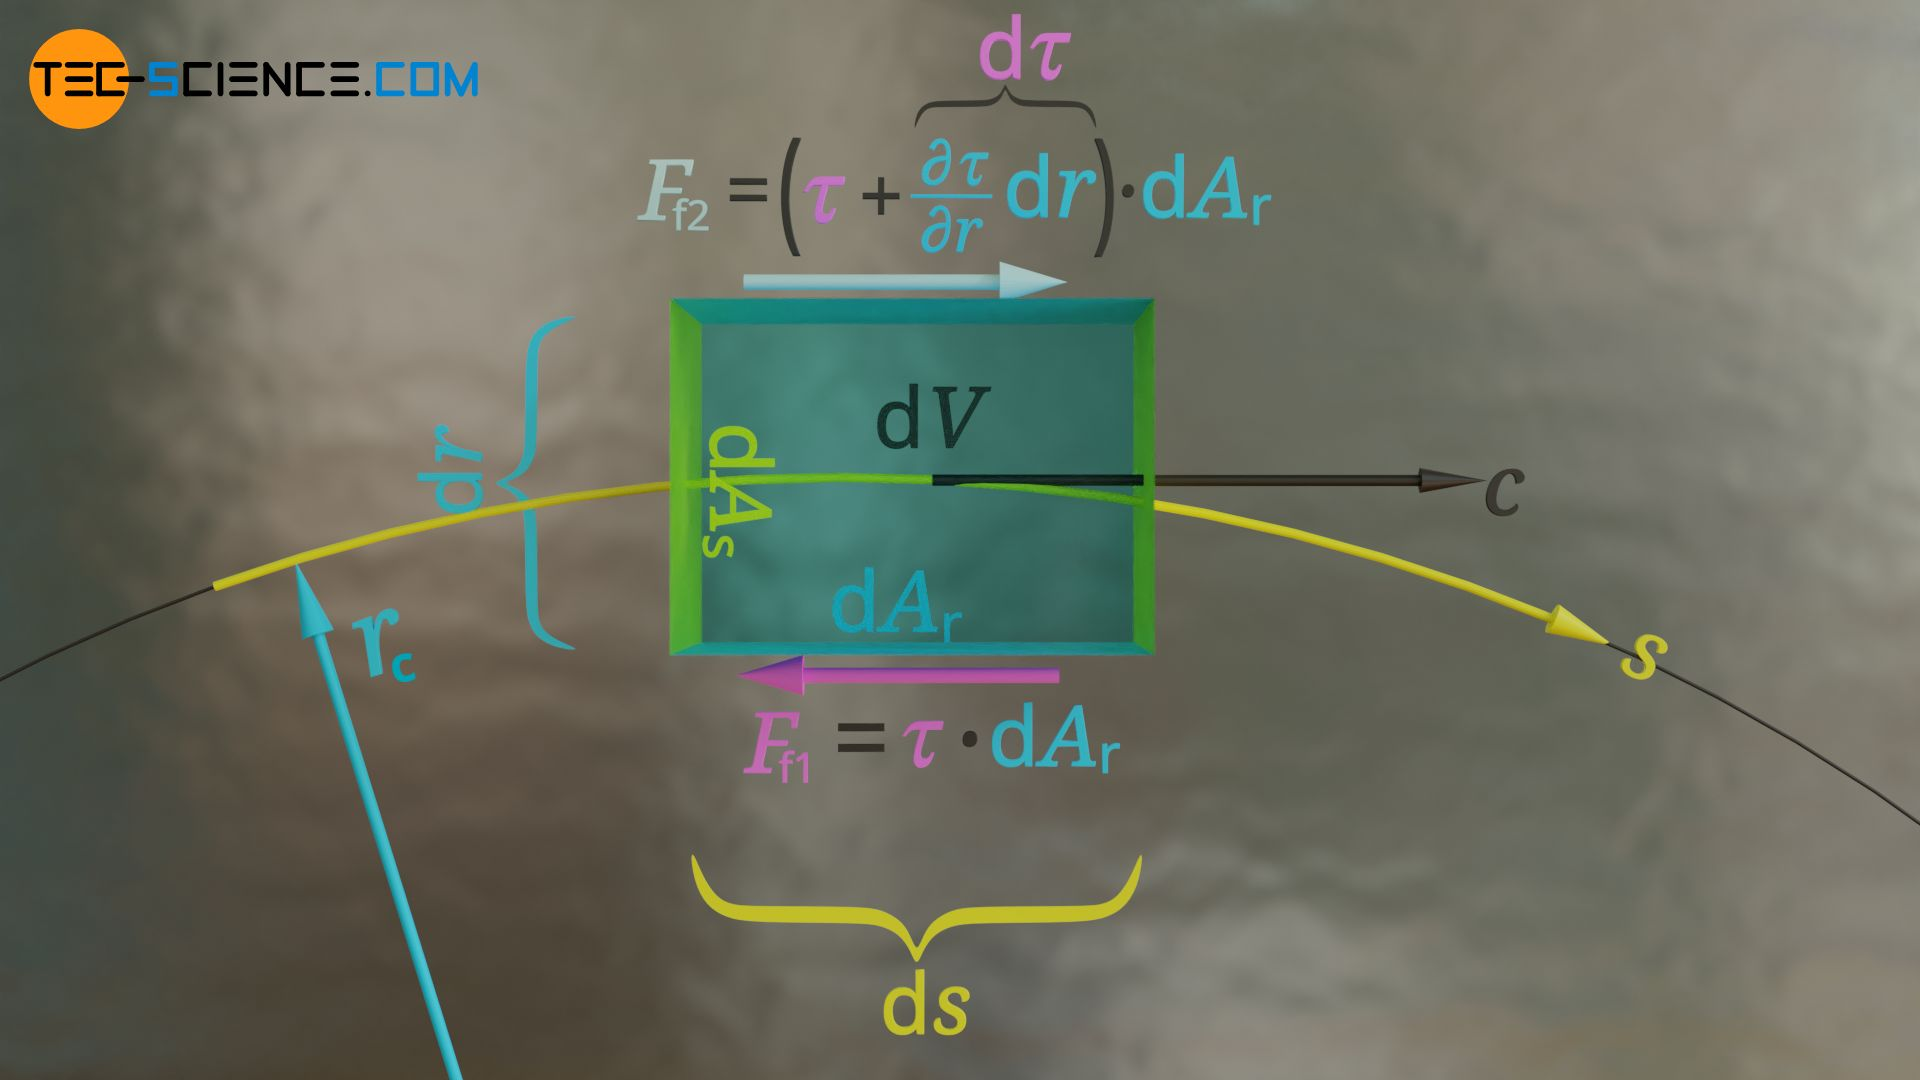 Frictional forces acting on the lateral surfaces of the fluid element